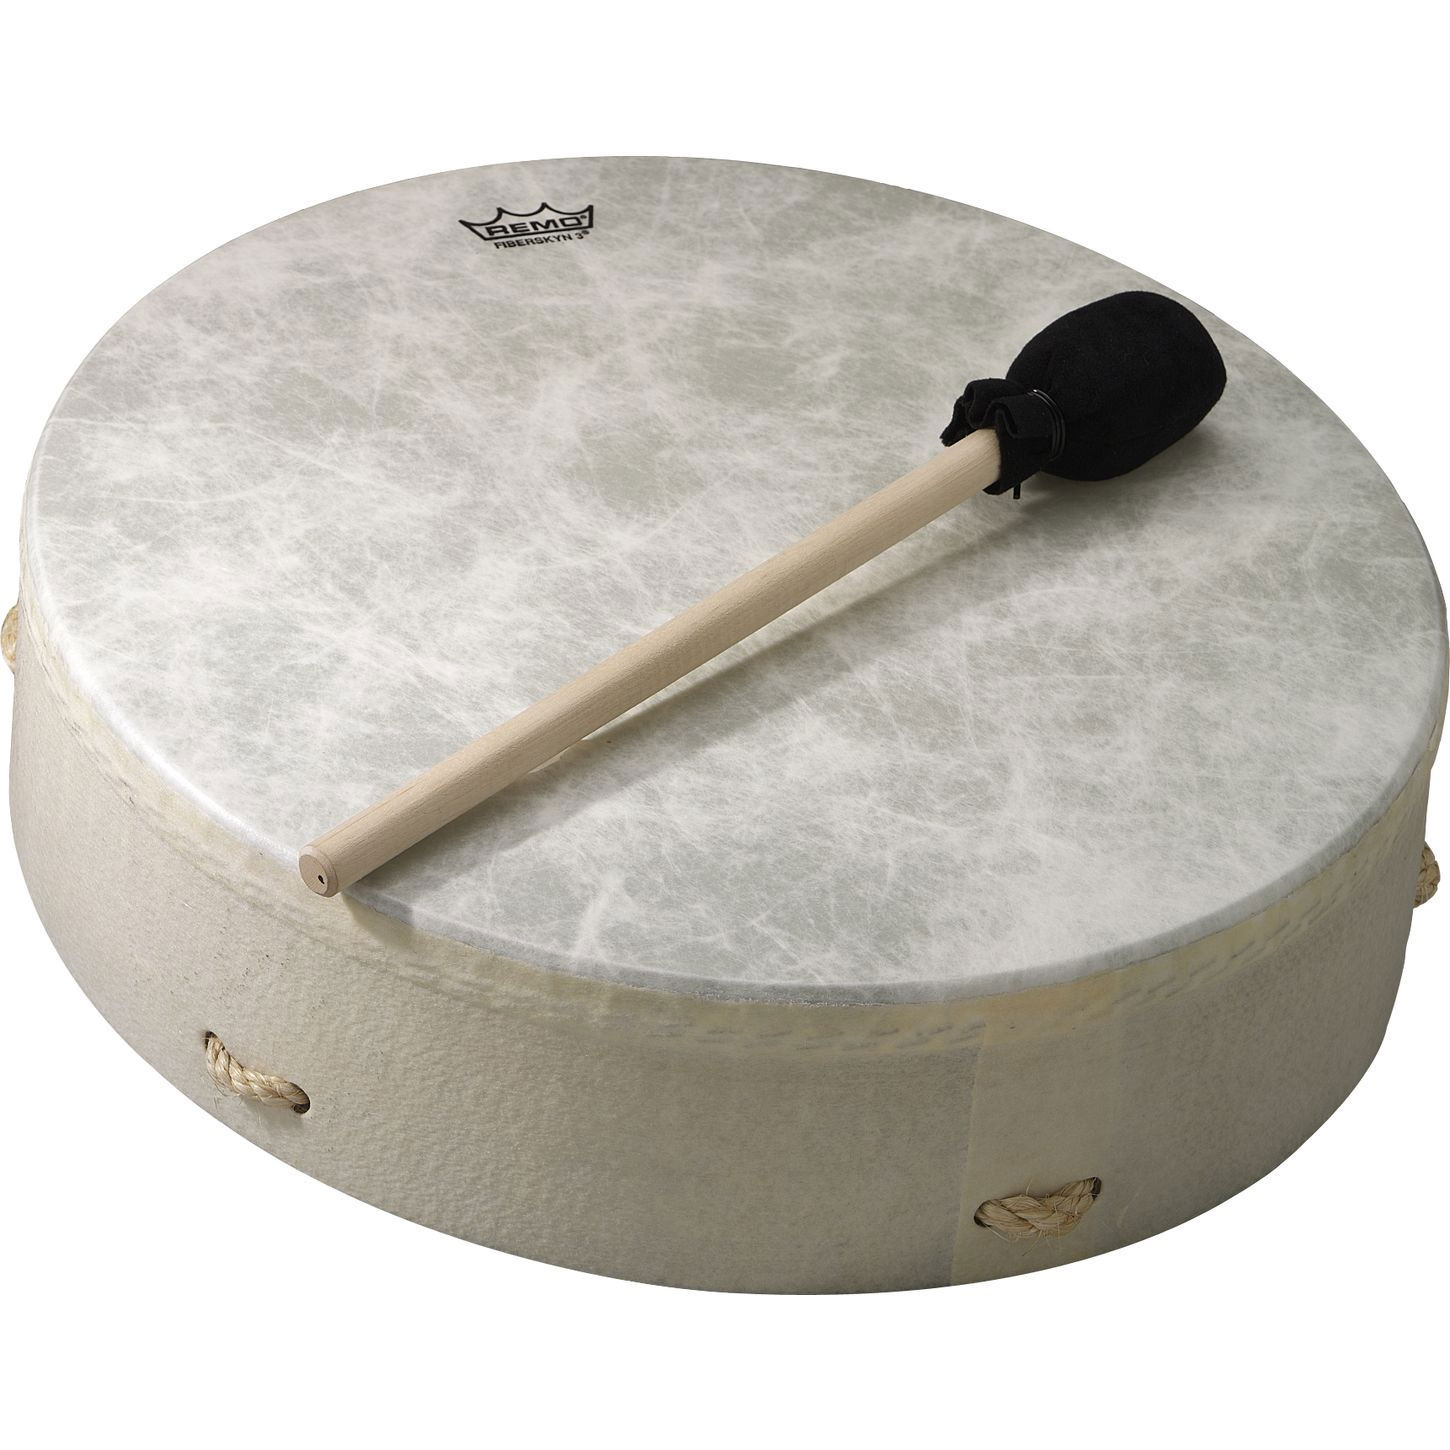 """Remo 3.5 x 16"""" Buffalo Drum with Mallet"""